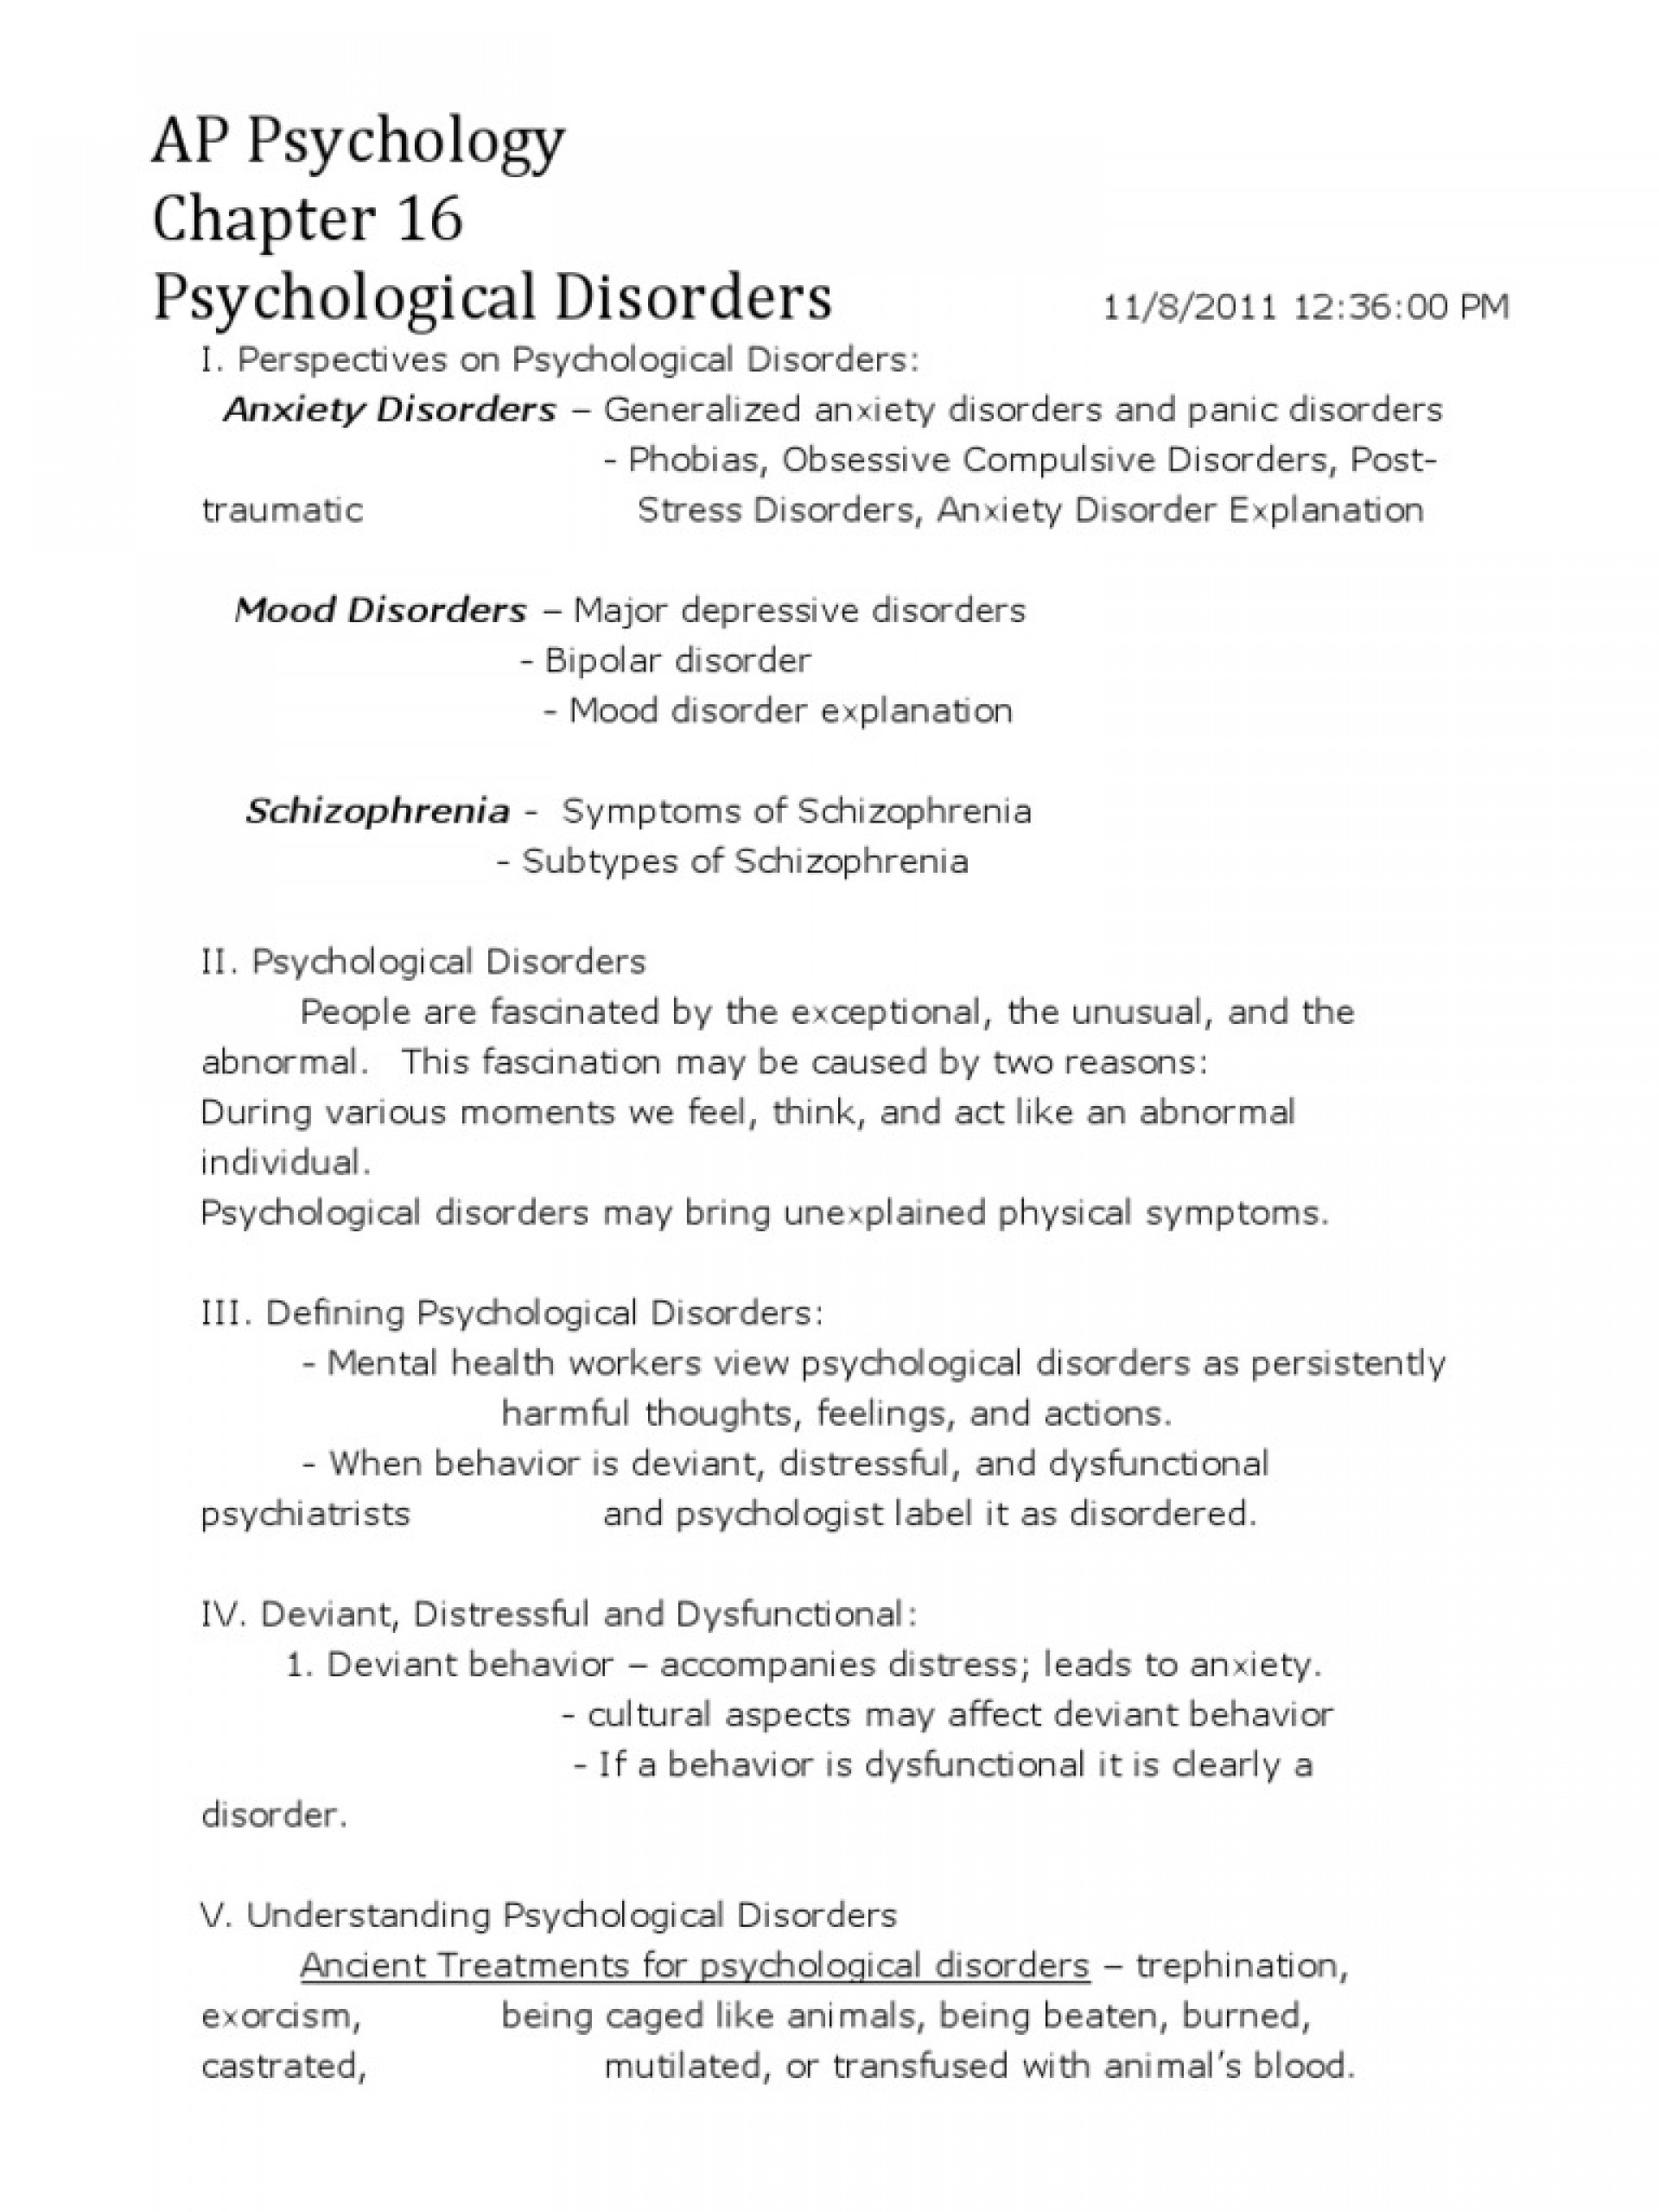 019 Bipolar Disorder Essay Topics Title Pdf College Introduction Question Conclusion Examples Outline How To Write Paragraph Research Best A Paper Good For 1920